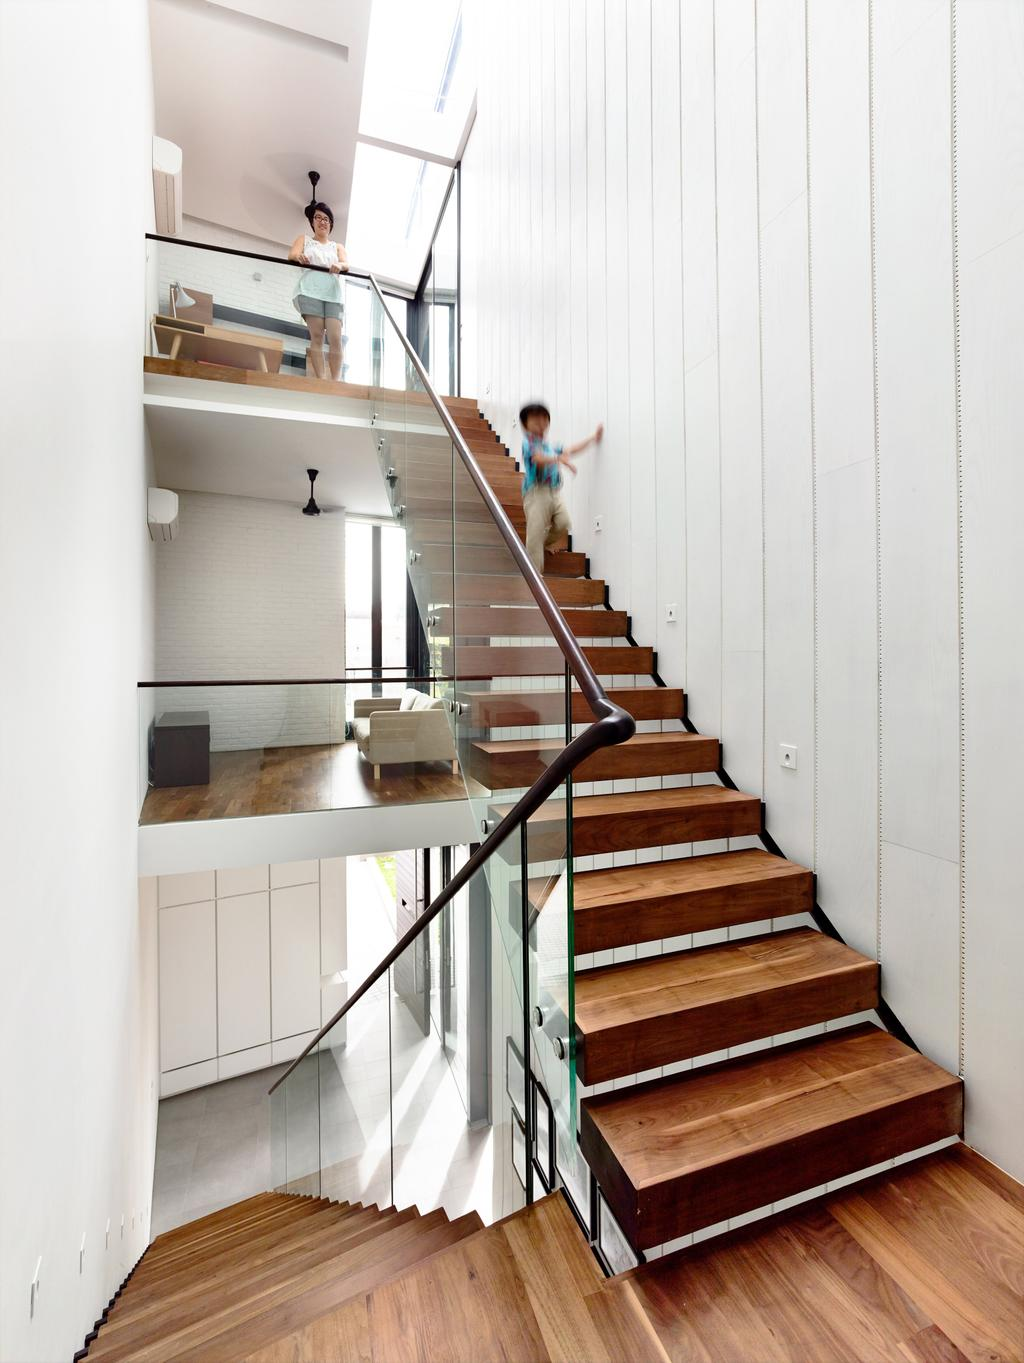 Contemporary, Landed, Faber Terrace, Architect, HYLA Architects, Banister, Handrail, Staircase, HDB, Building, Housing, Indoors, Loft